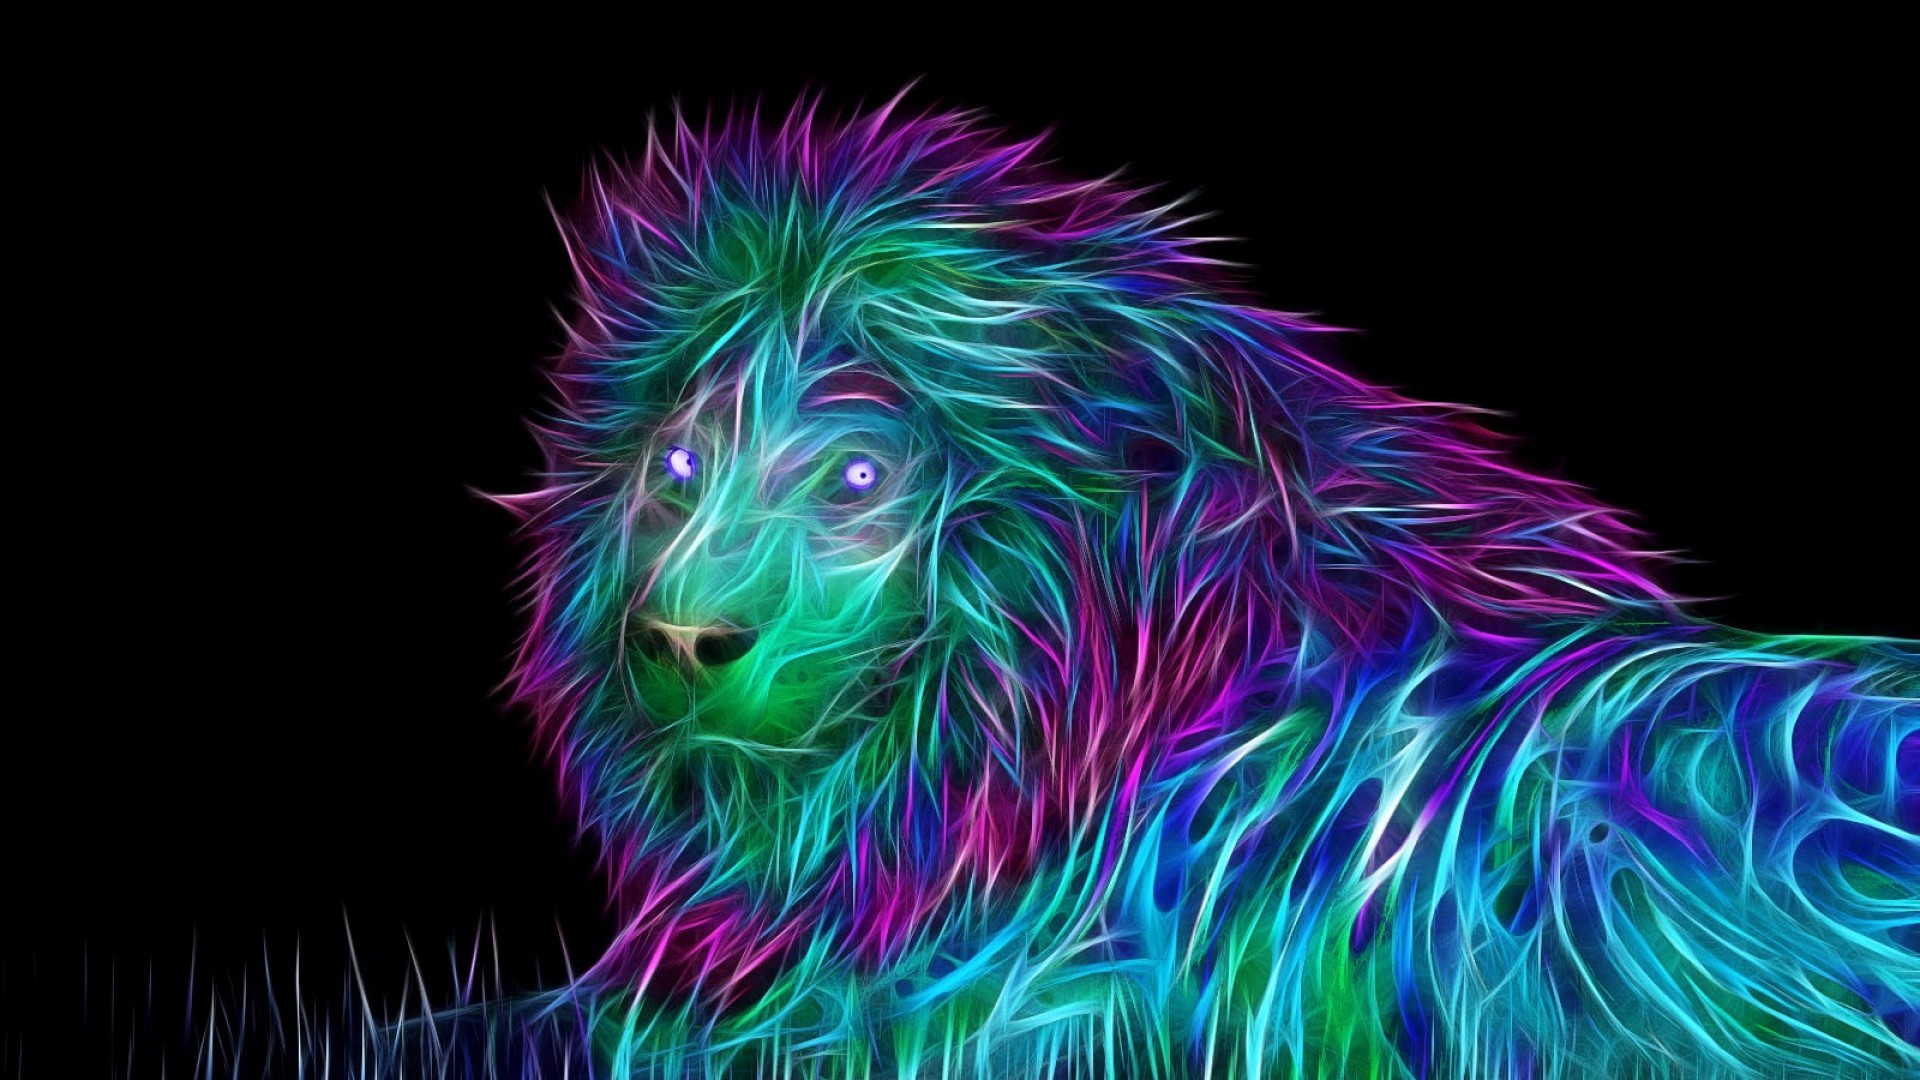 A beautiful picture of #3D Creative #Rainbow Wallpaper downloaded from  https://alliswall.com | 3D & Abstract | Pinterest | Rainbow wallpaper